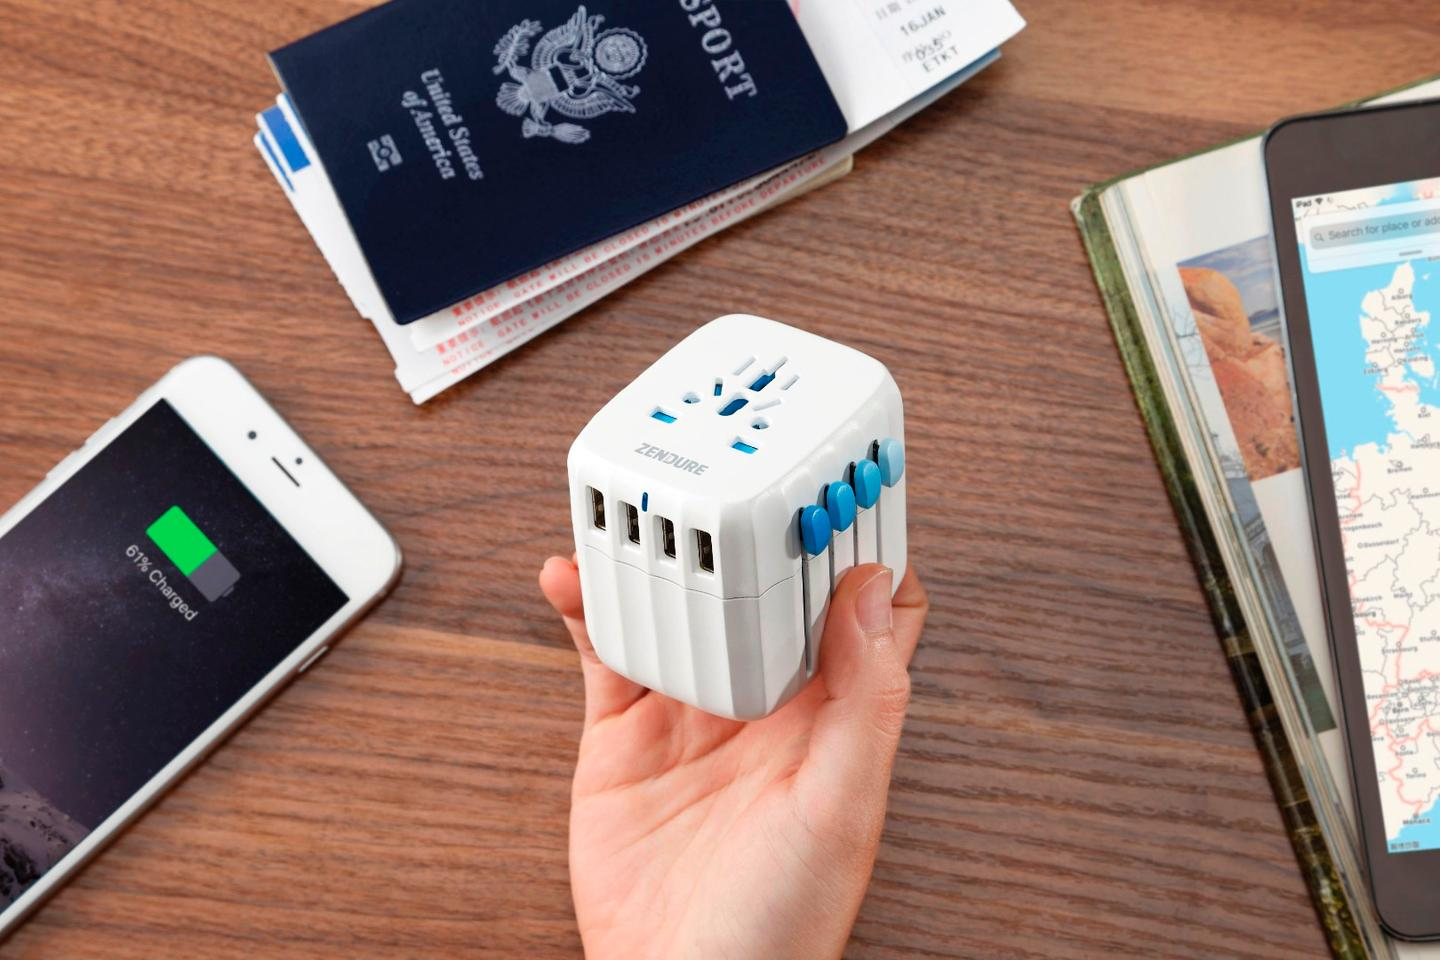 The built-in auto-resetting fuse allows the Passport to automatically recover from a surge within one minute